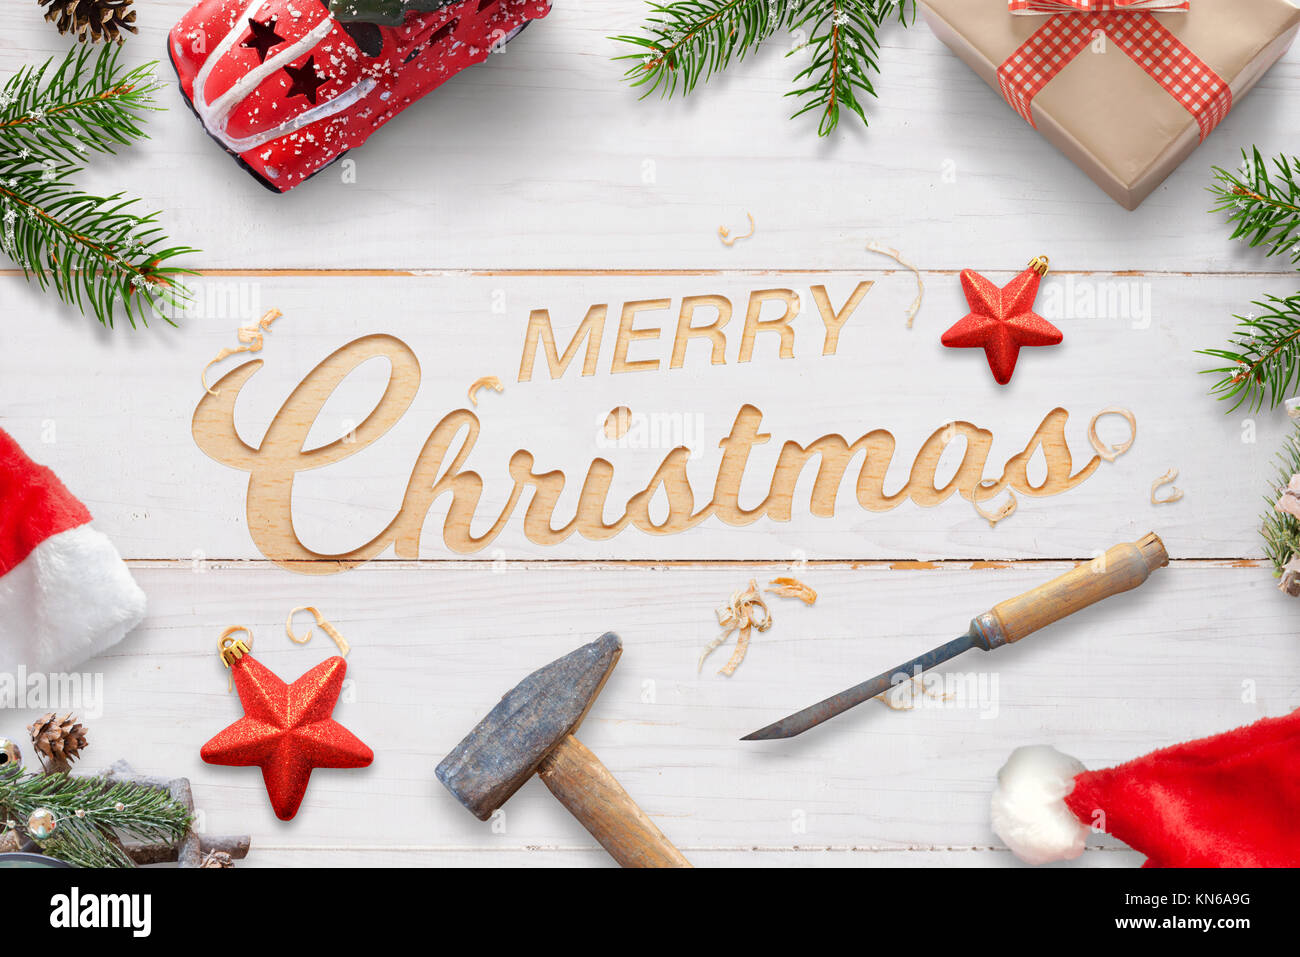 Creative Chrtistmas greeting with carved text on white wooden surface with hammer and chisel. Christmas decorations - Stock Image